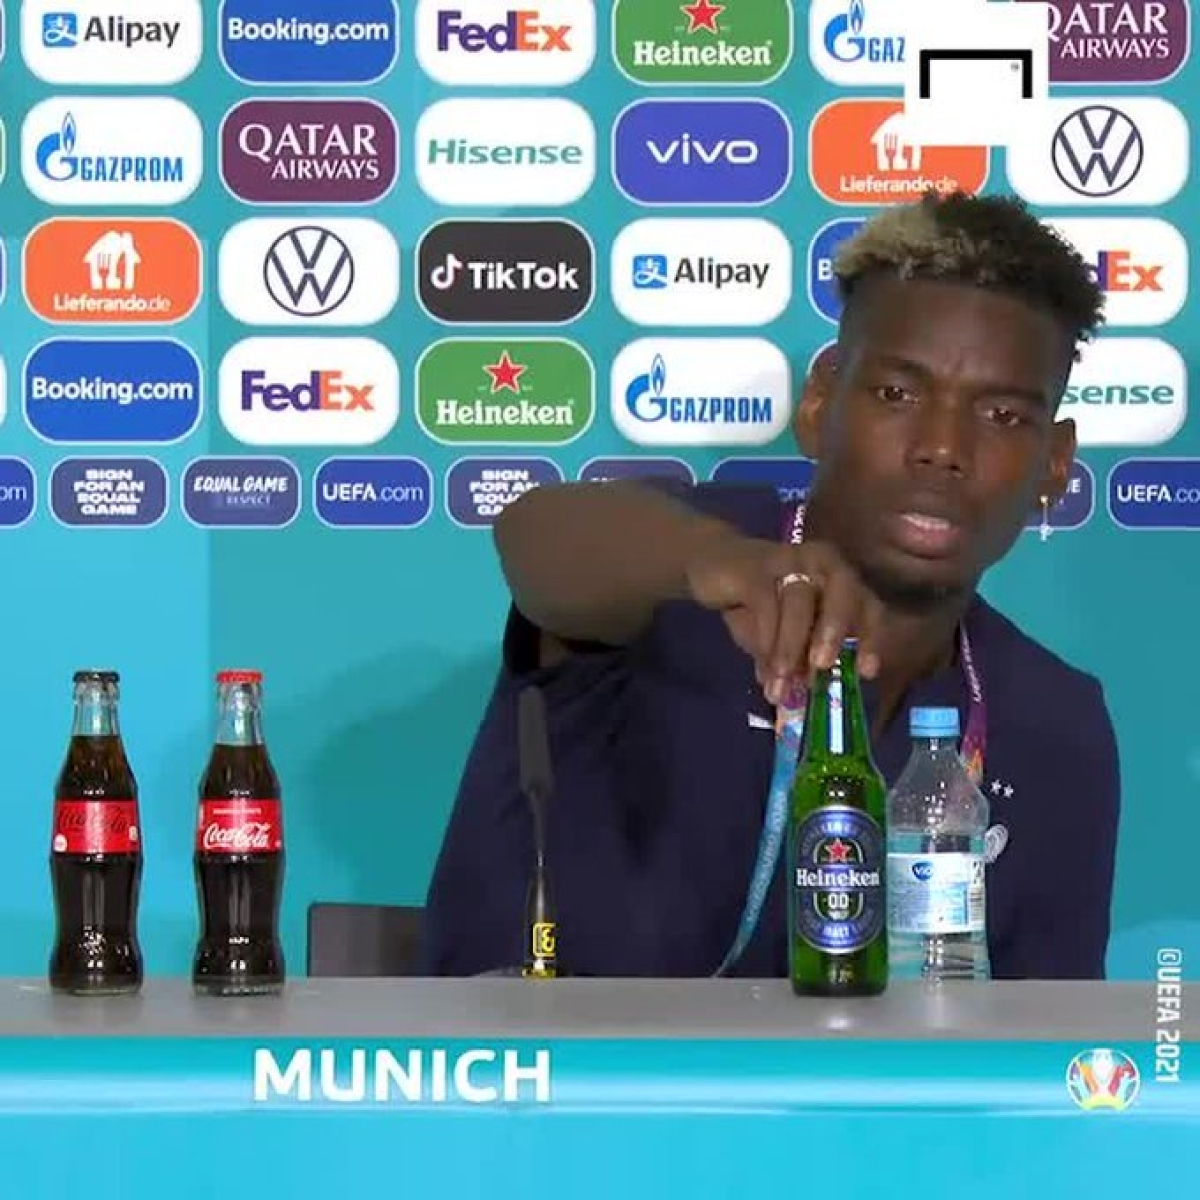 Watch: After Ronaldo's coke act, Paul Pogba removes beer bottle during Euro 2020 presser